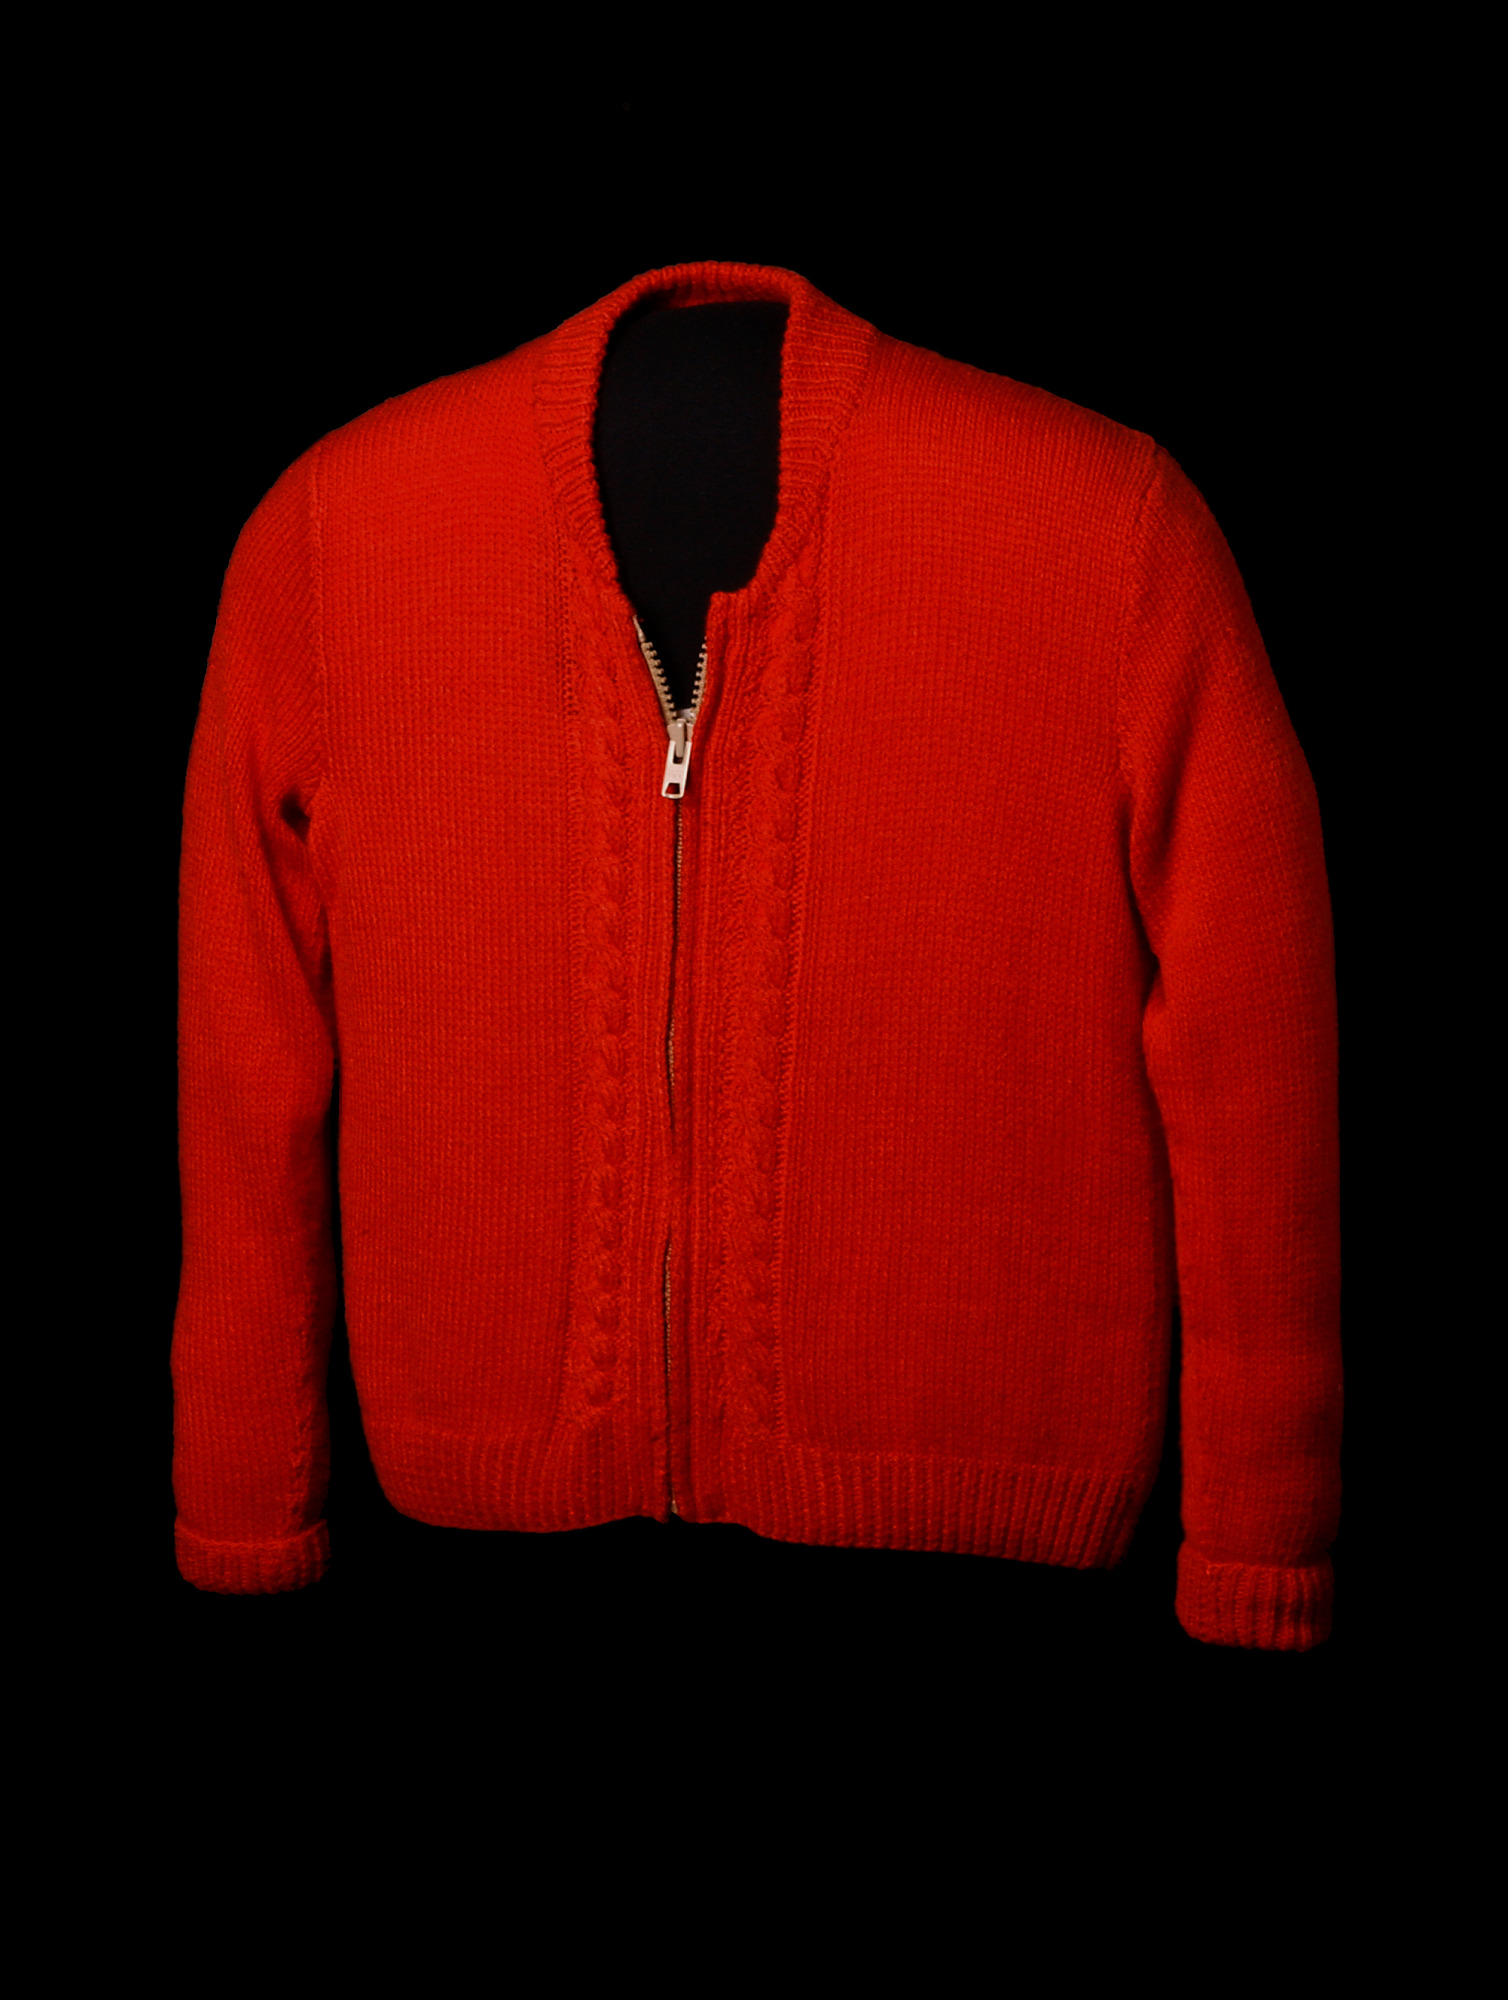 images for Mister Rogers' Sweater